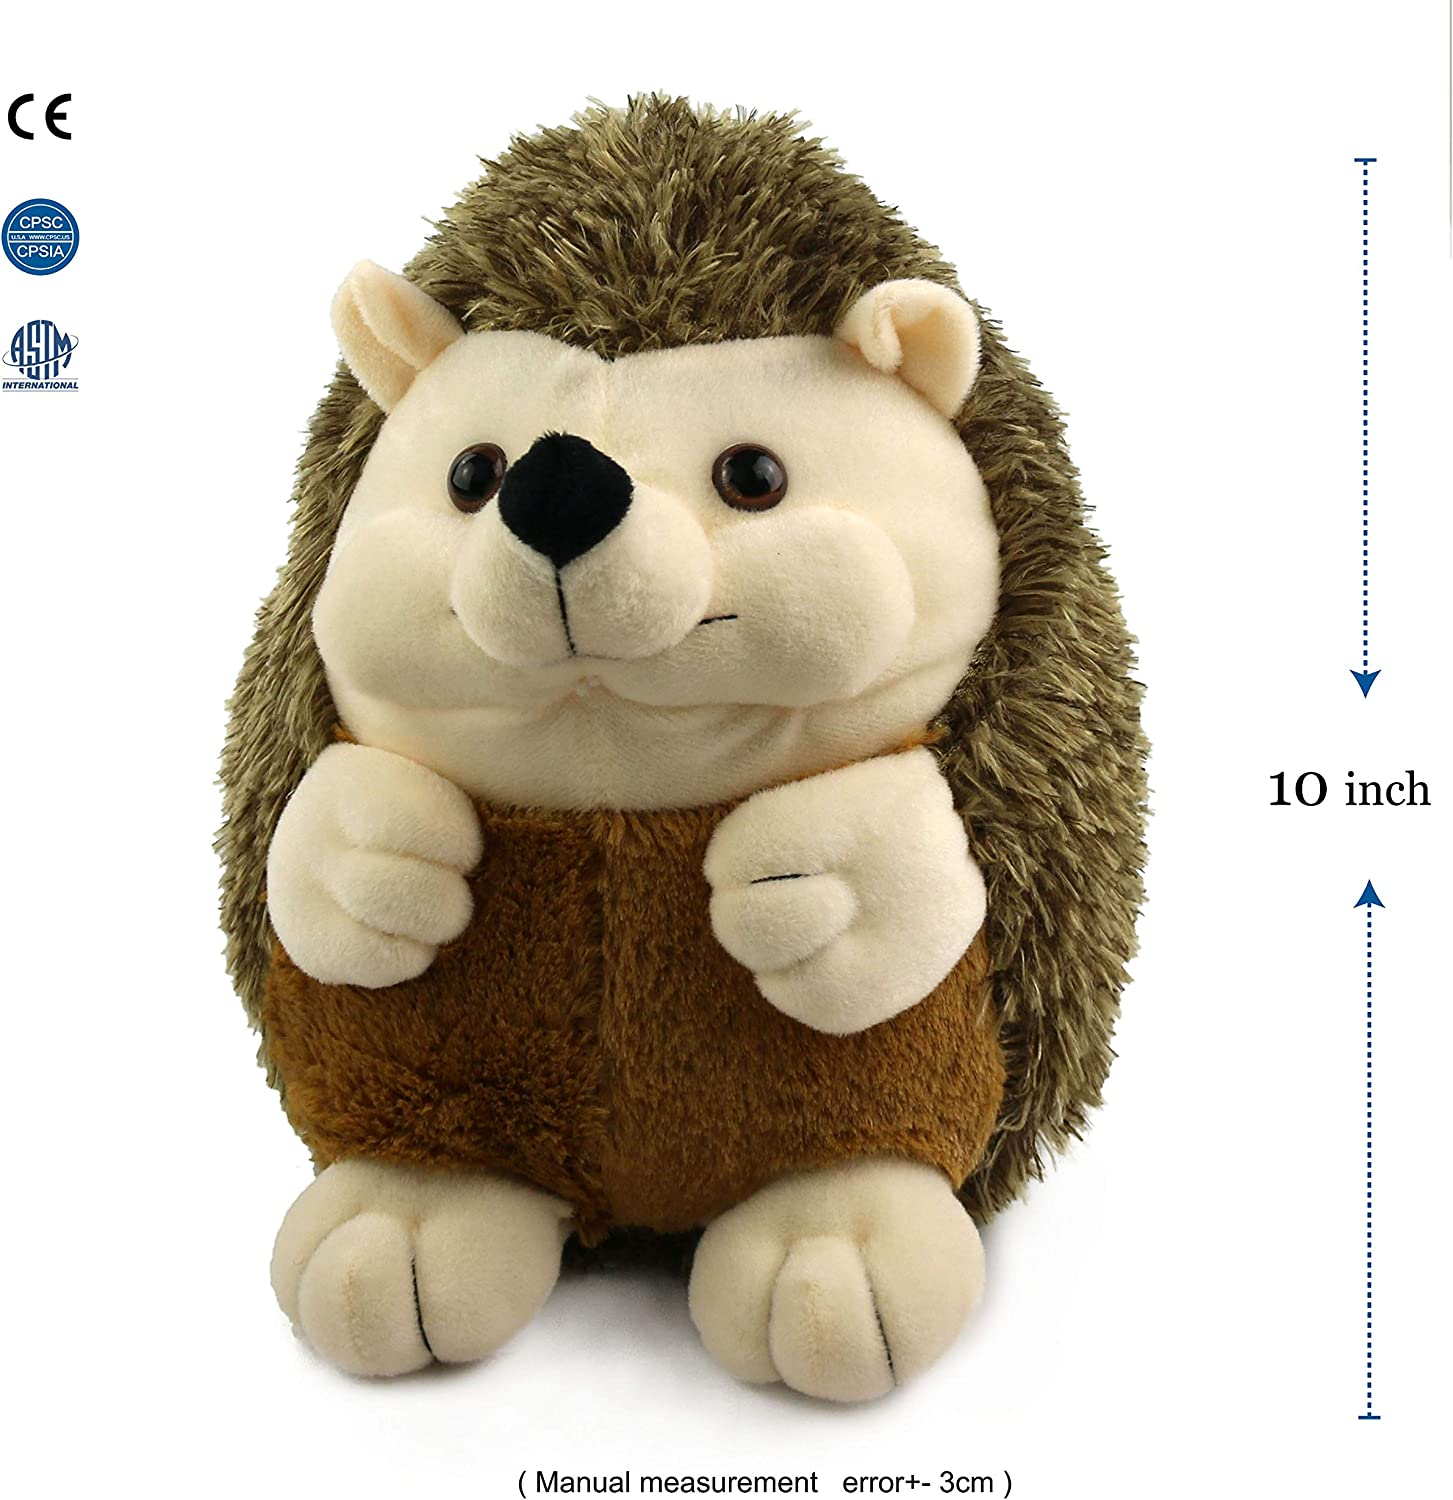 Houwsbaby Realistic Hedgehog Plush Lifelike Wildlife Stuffed Animal Plush Toys Gift for Kids Companion Holiday Birthday, Brown,10''